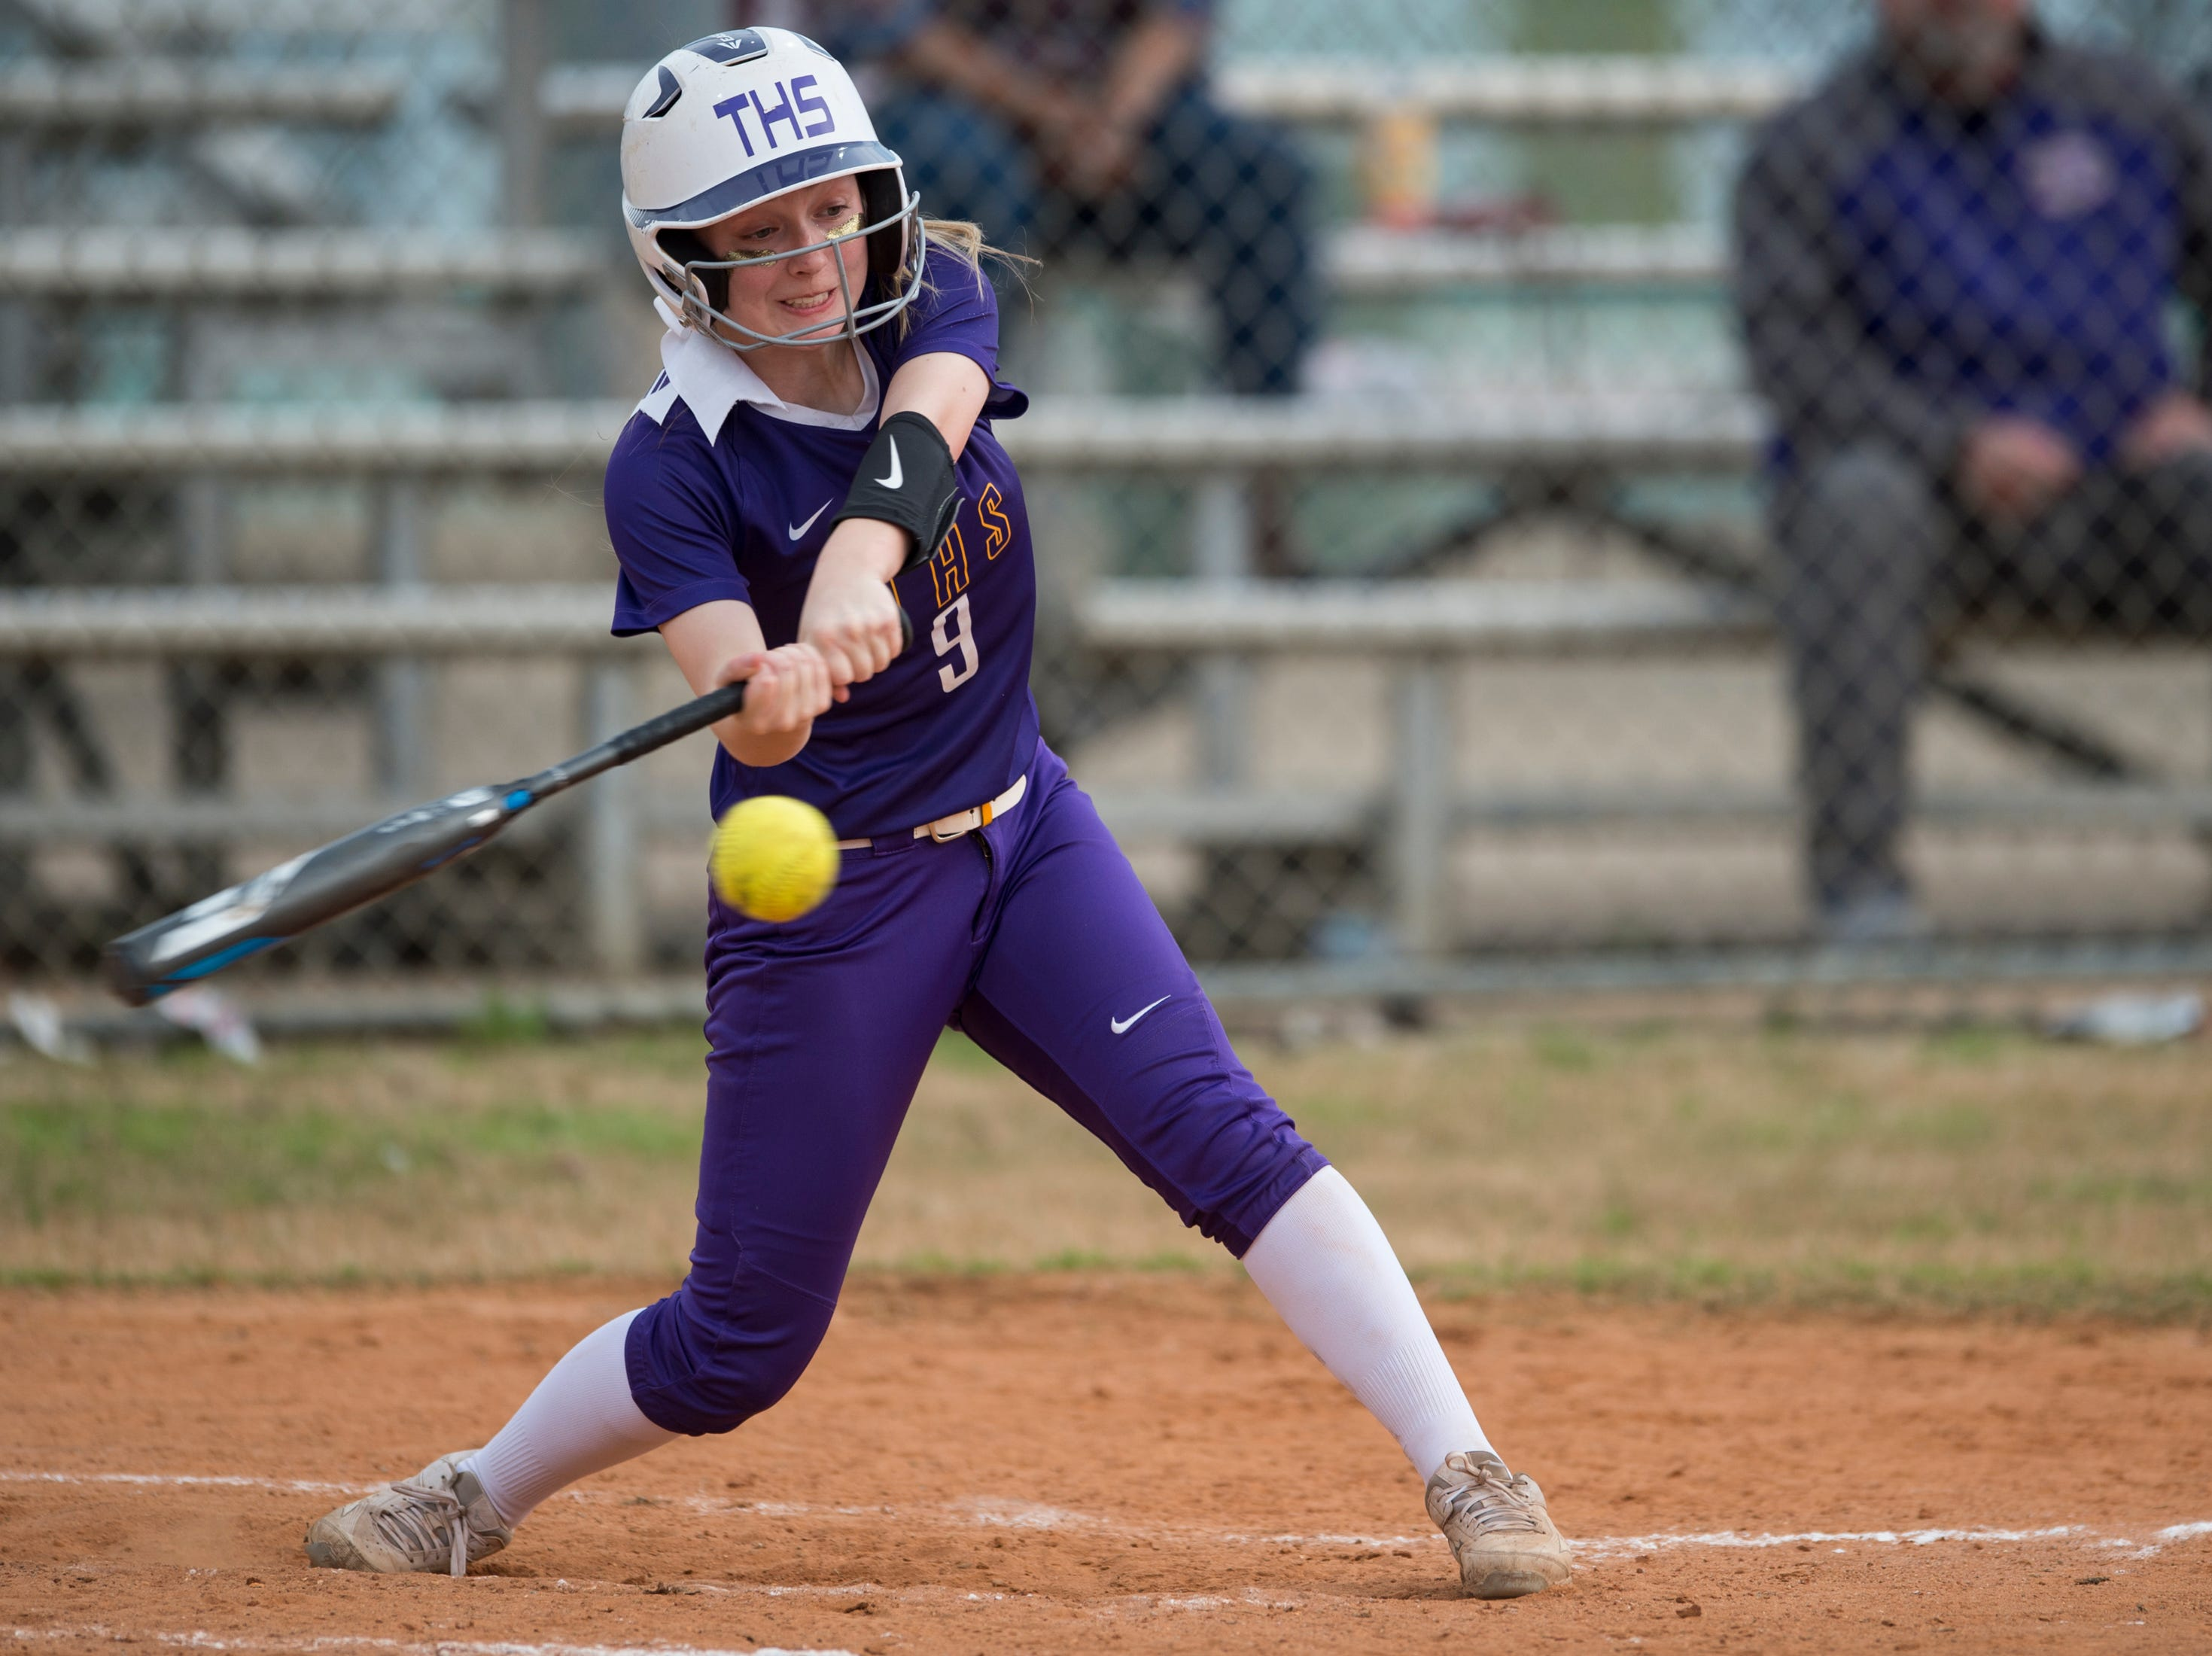 Tallassee's Alivia Haynes (9) swings at the ball at Thompson Park in Montgomery, Ala., on Thursday, March 14, 2019. Tallassee defeated Brew Tech 7-0.